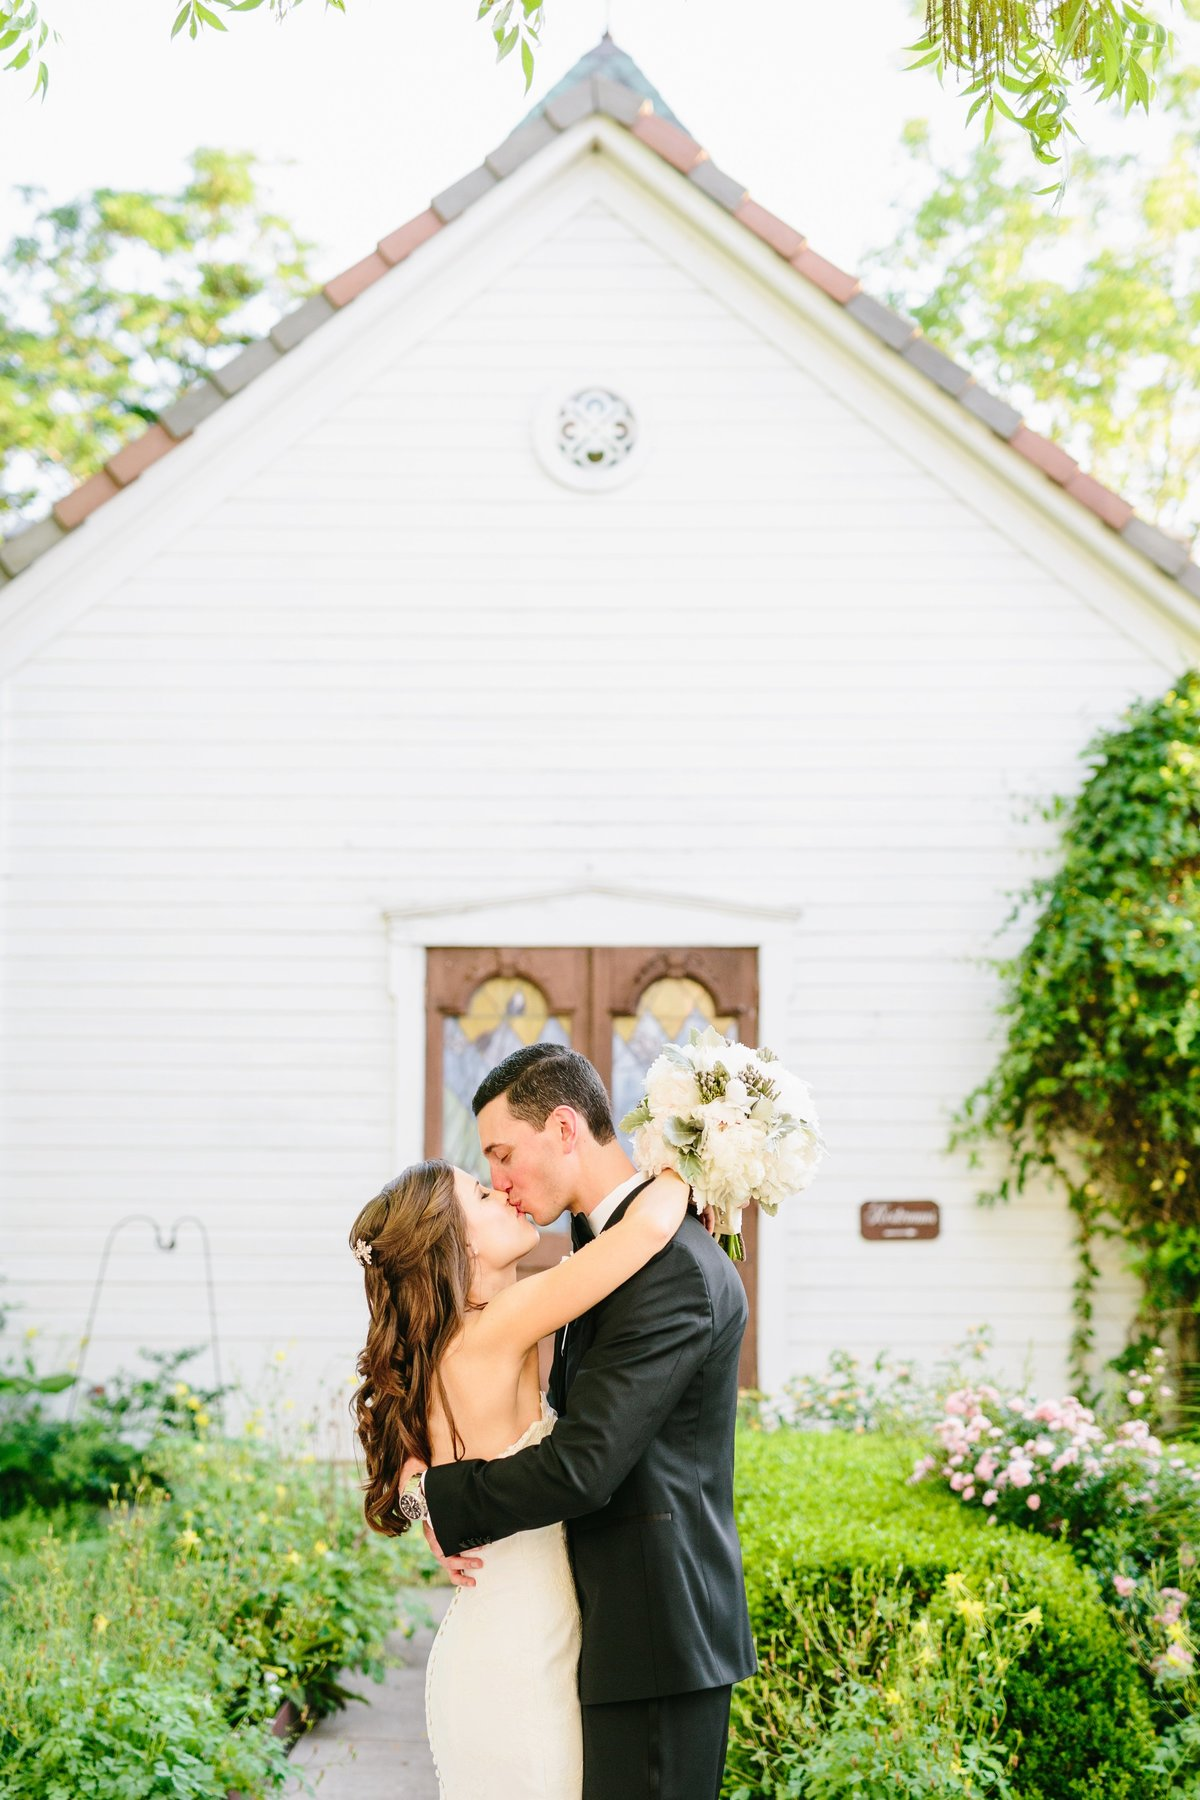 Wedding Photos-Jodee Debes Photography-182